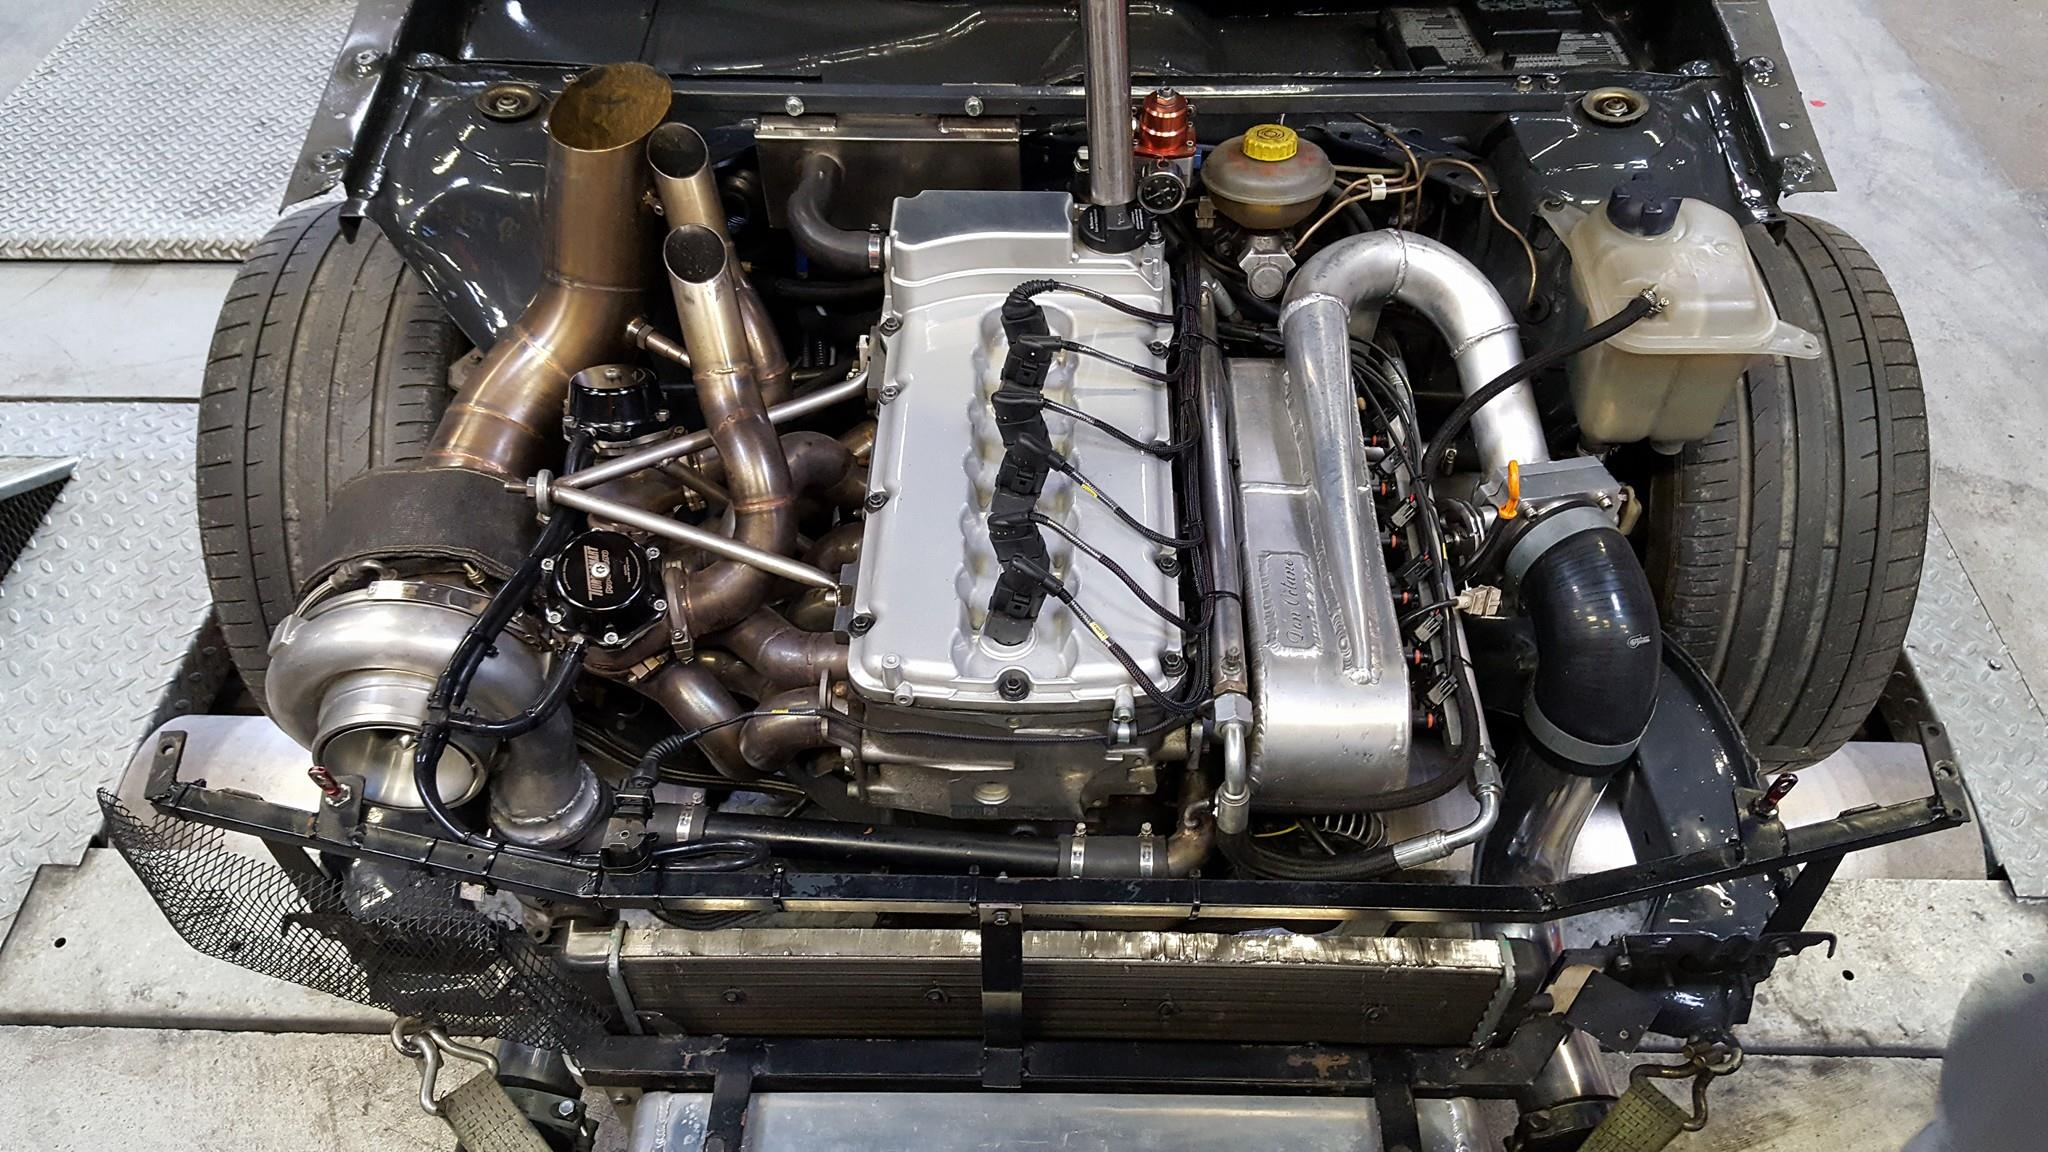 Audi S2 With A Turbo Vr6 Engine Swap Depot